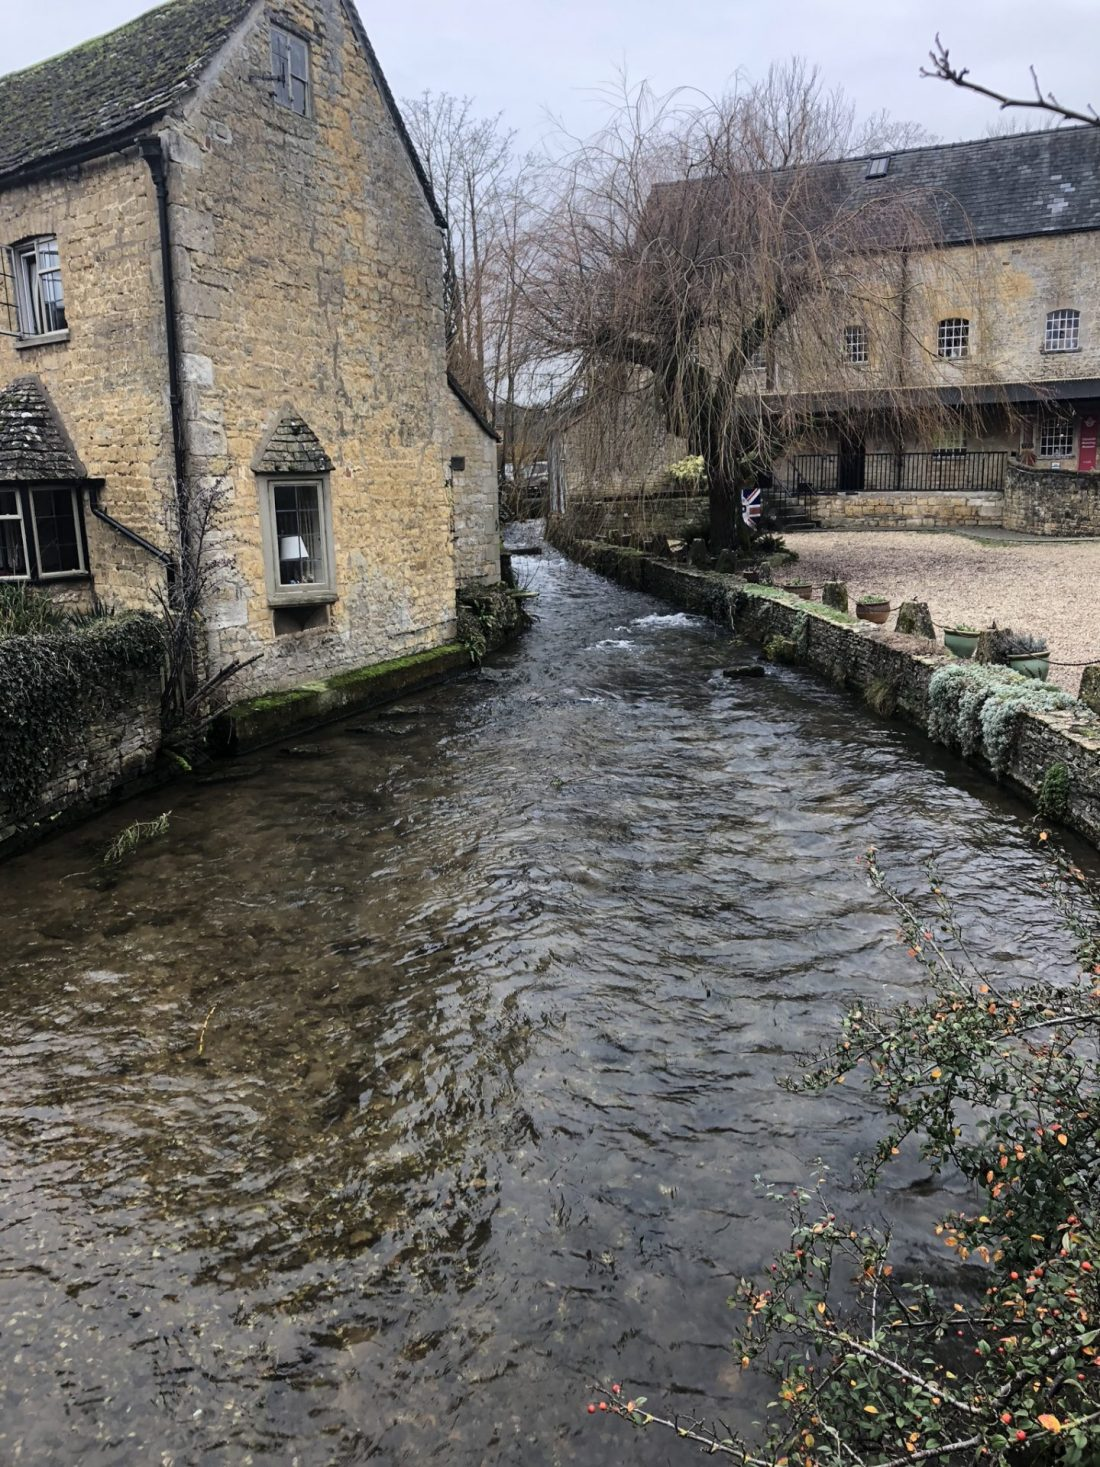 A stream in Bourton-on-the-Water, Gloucestershire